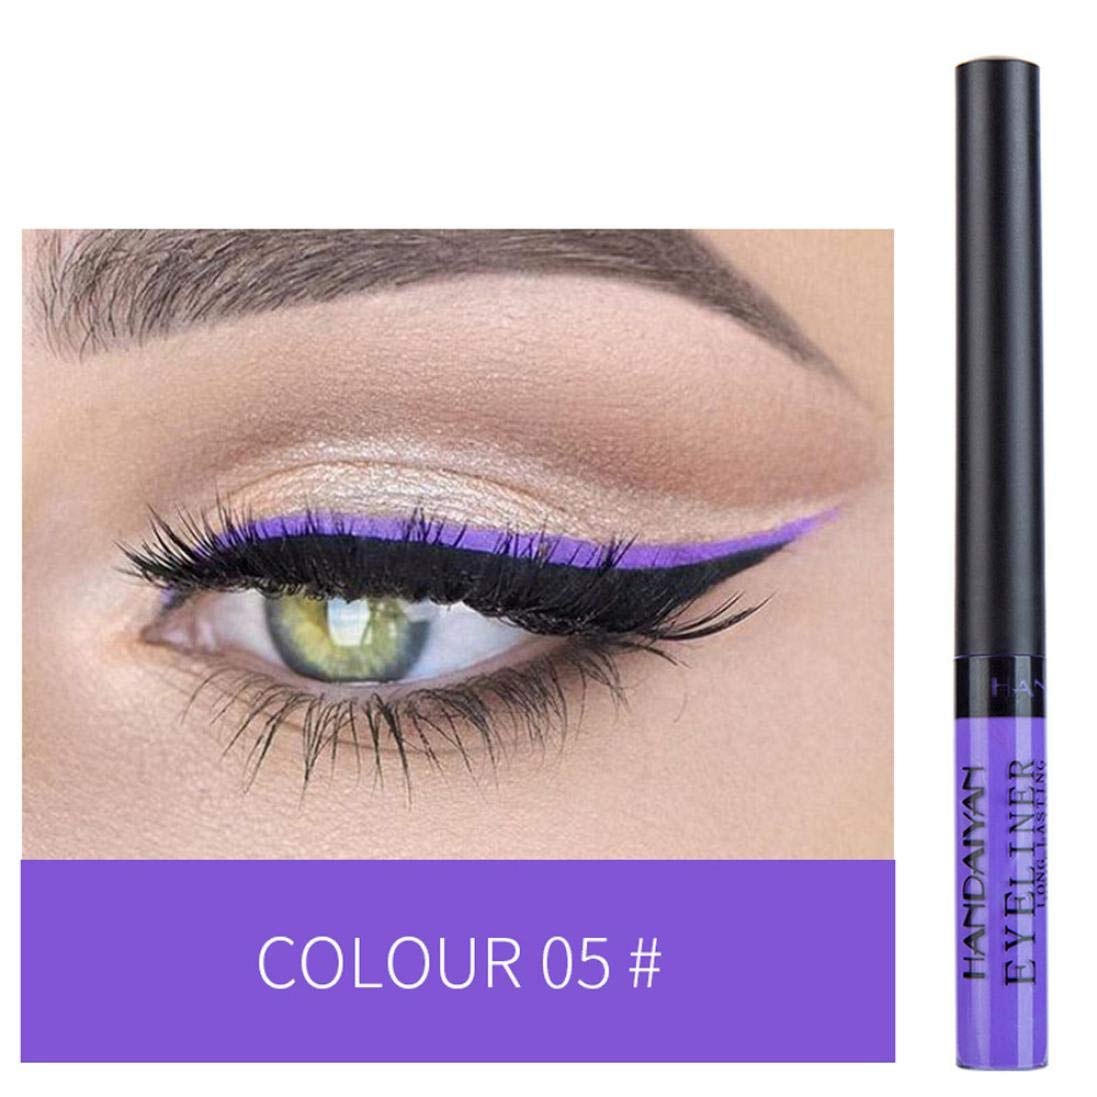 Liquid Eyeliner Waterproof Glitter Eyeliner Liquid Long-lasting Eyeshadow Liquid Liner Metallic Shiny Smoky Eyes Eyeliner Liquid Felt Tip (E)